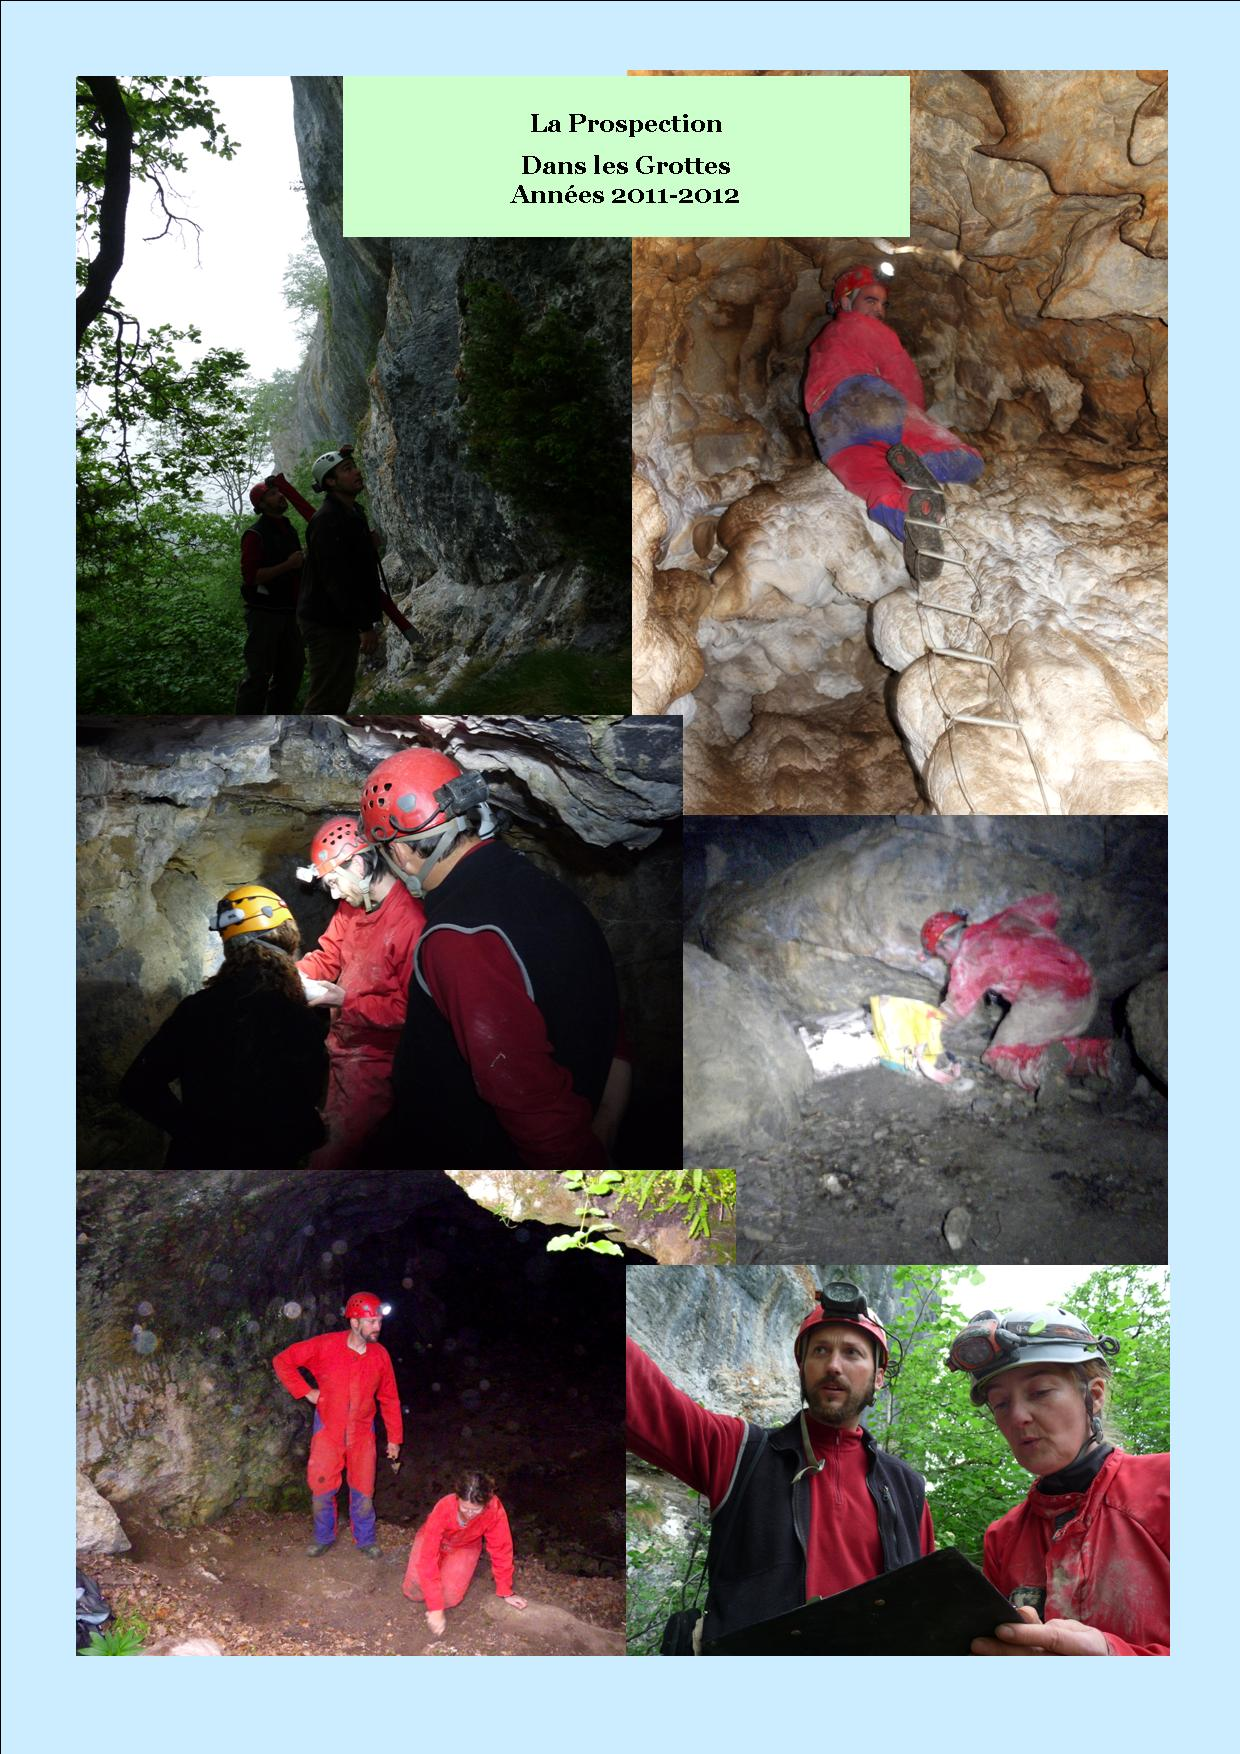 11-actions-2011-2012-la-prospection-grottes